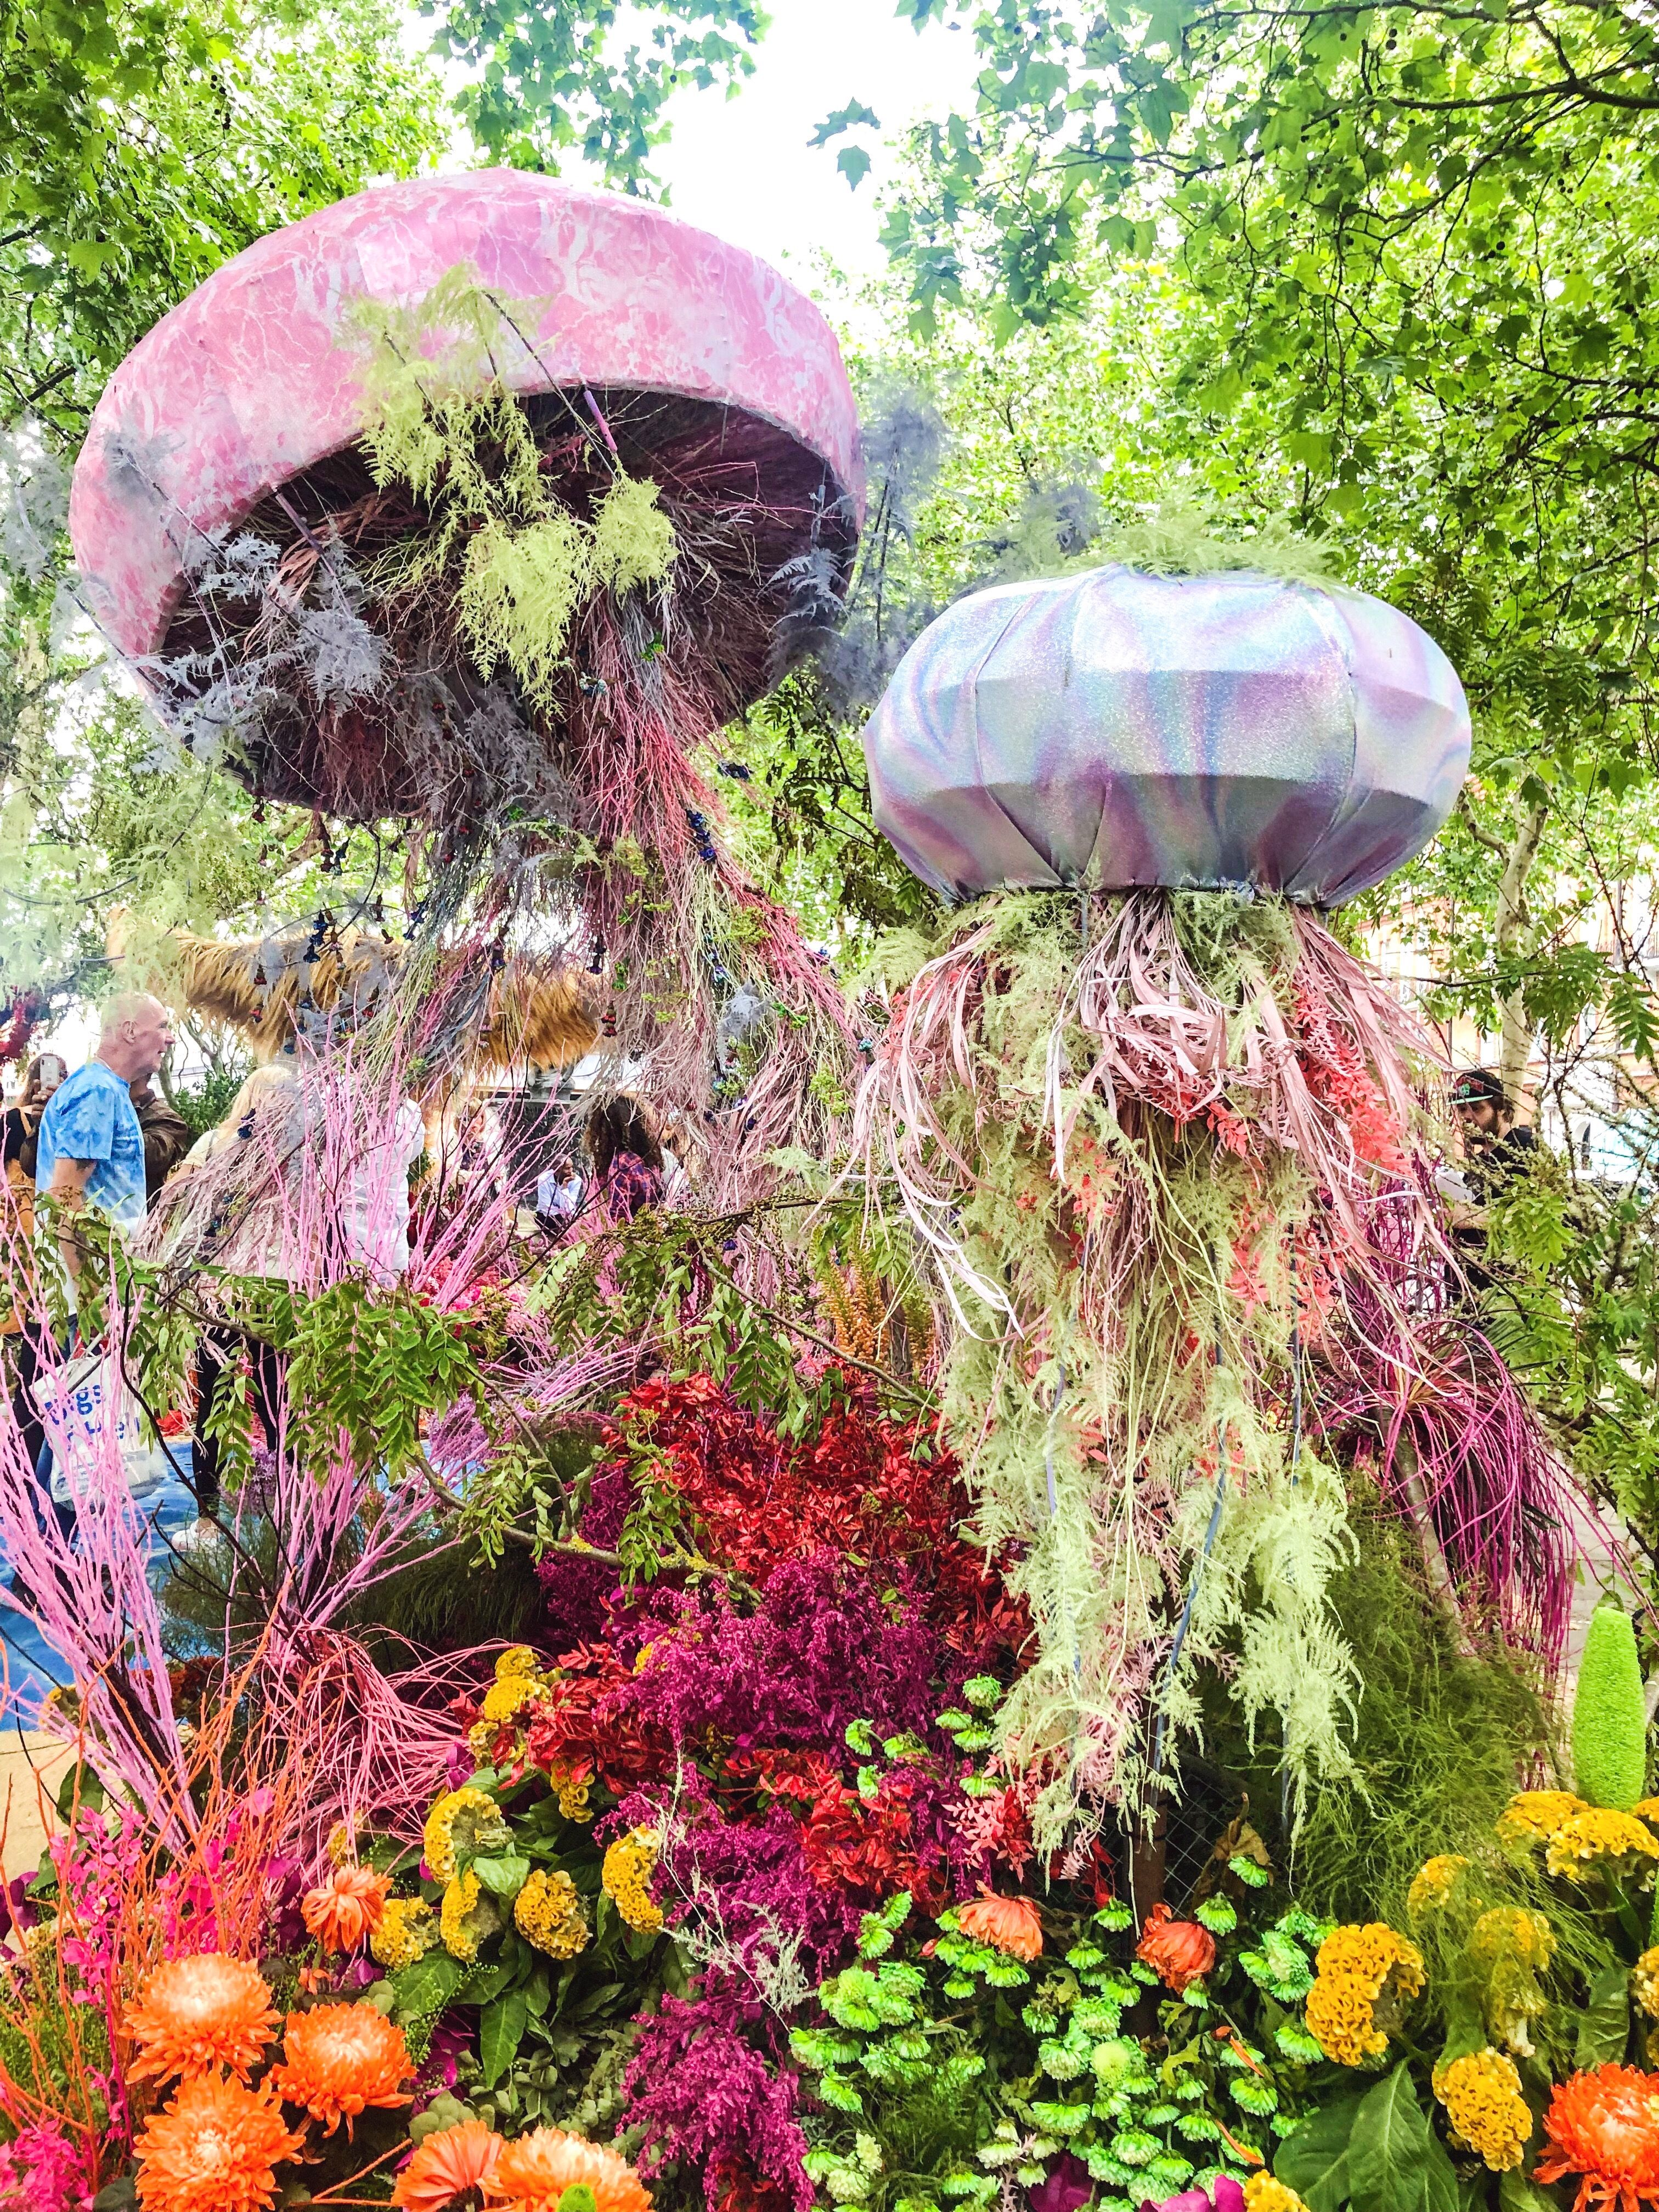 Chelsea In Bloom 2019 Bloom, Chelsea flower show